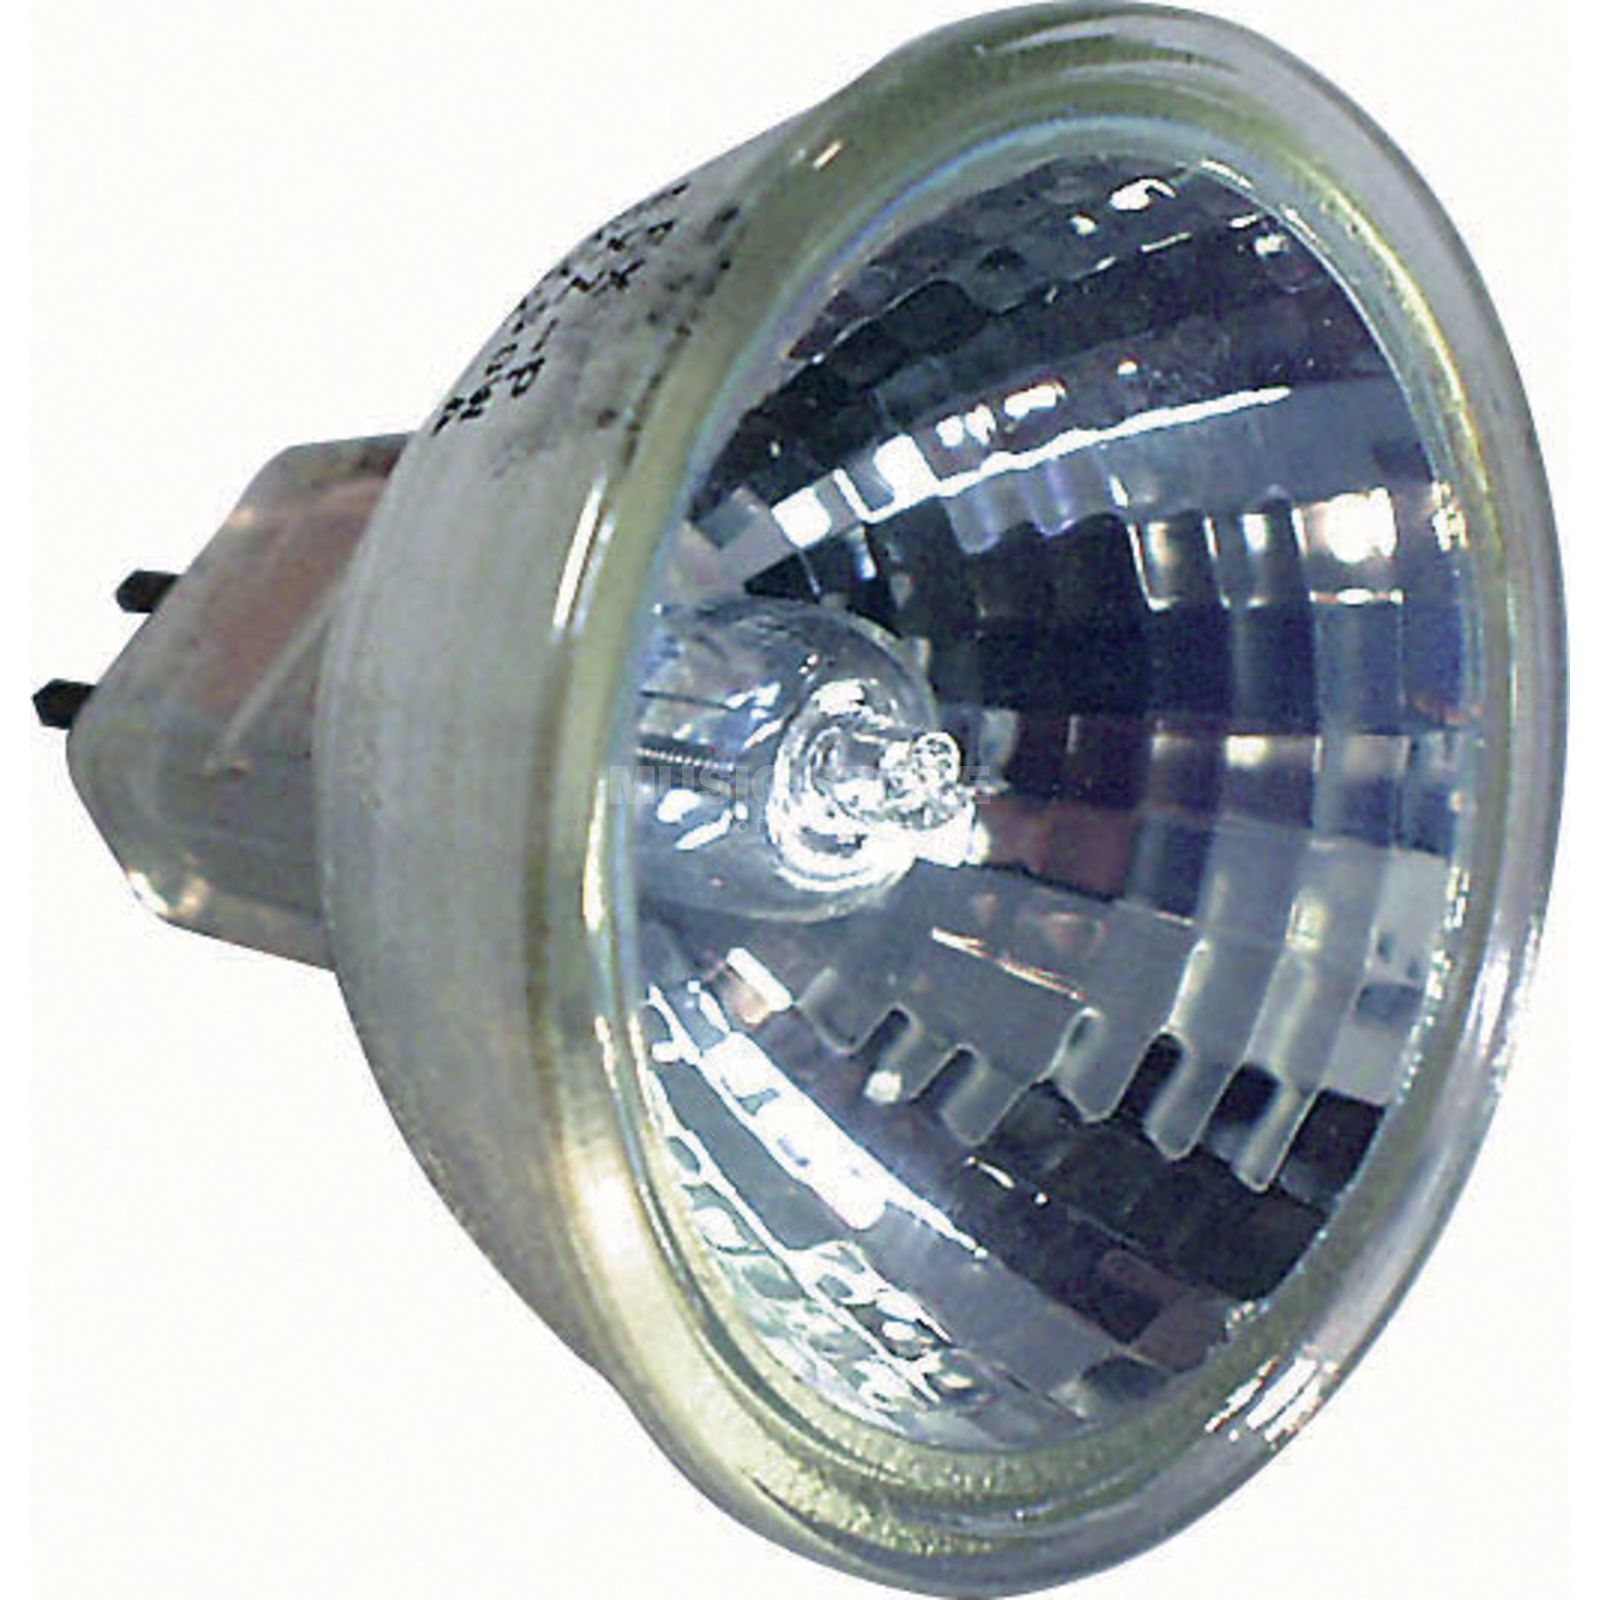 lightmaXX Reflector Lamp ELC 24V/250W  Product Image